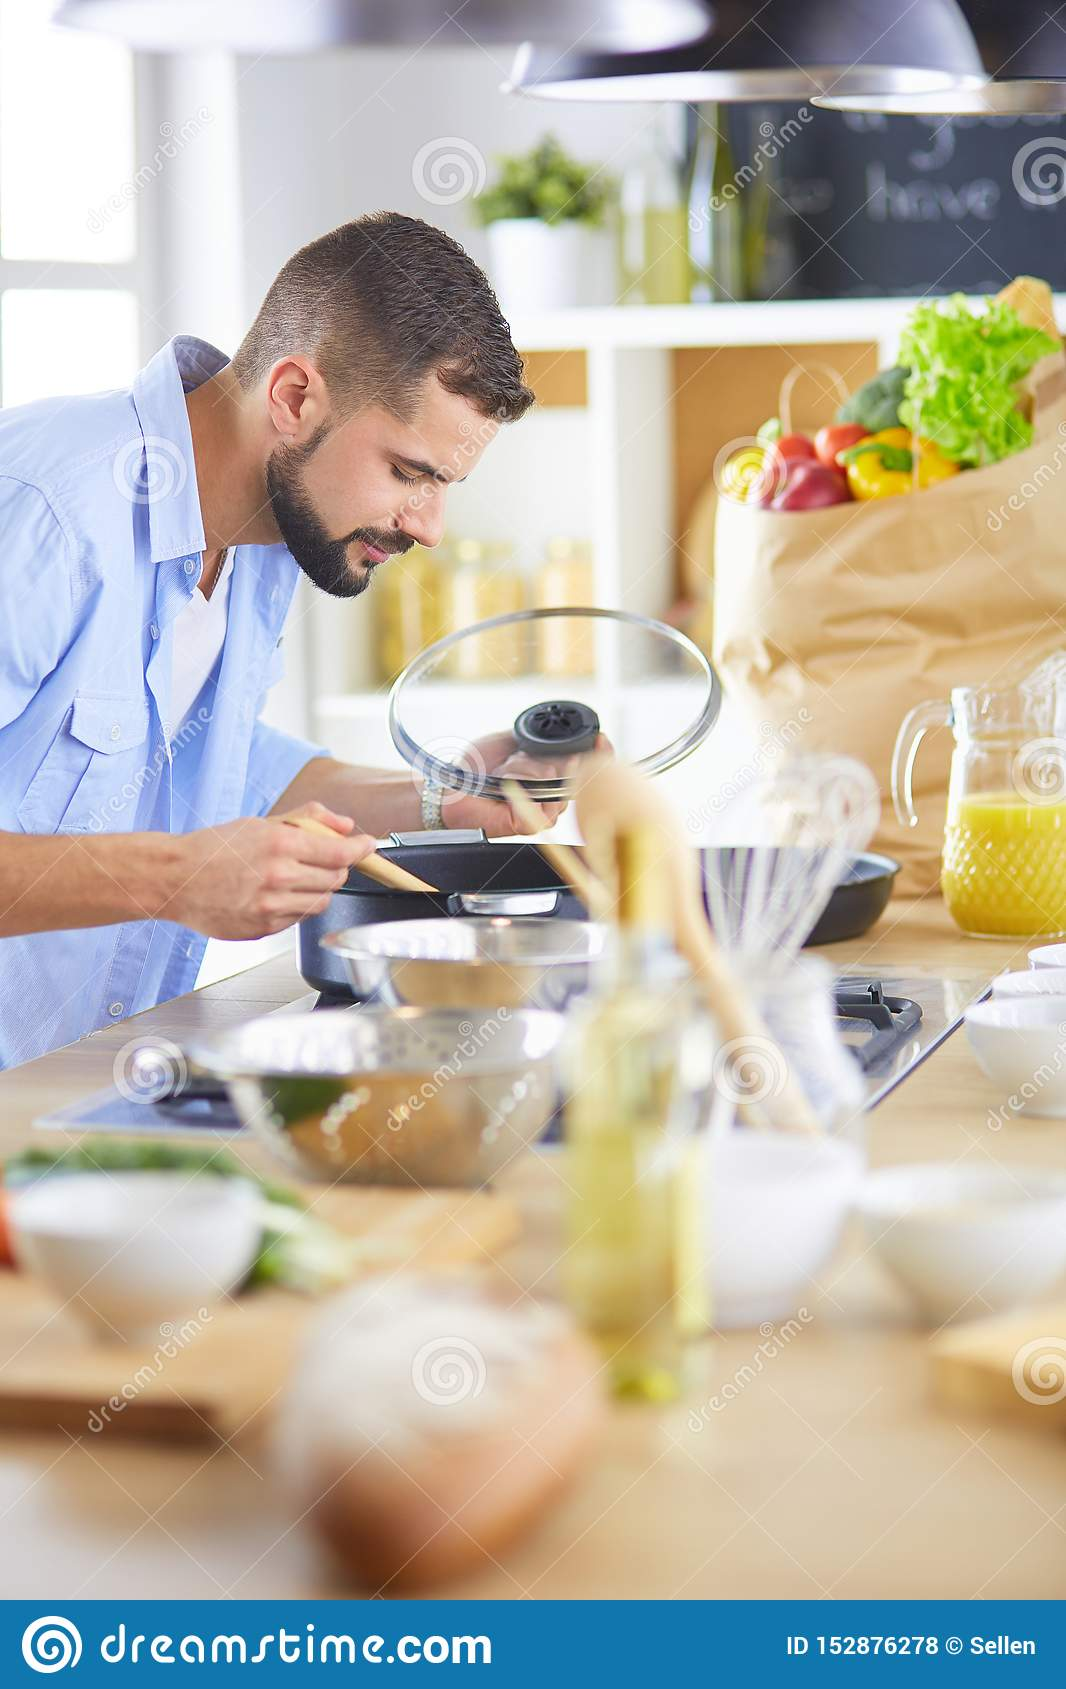 Man following recipe on digital tablet and cooking tasty and healthy food in kitchen at home